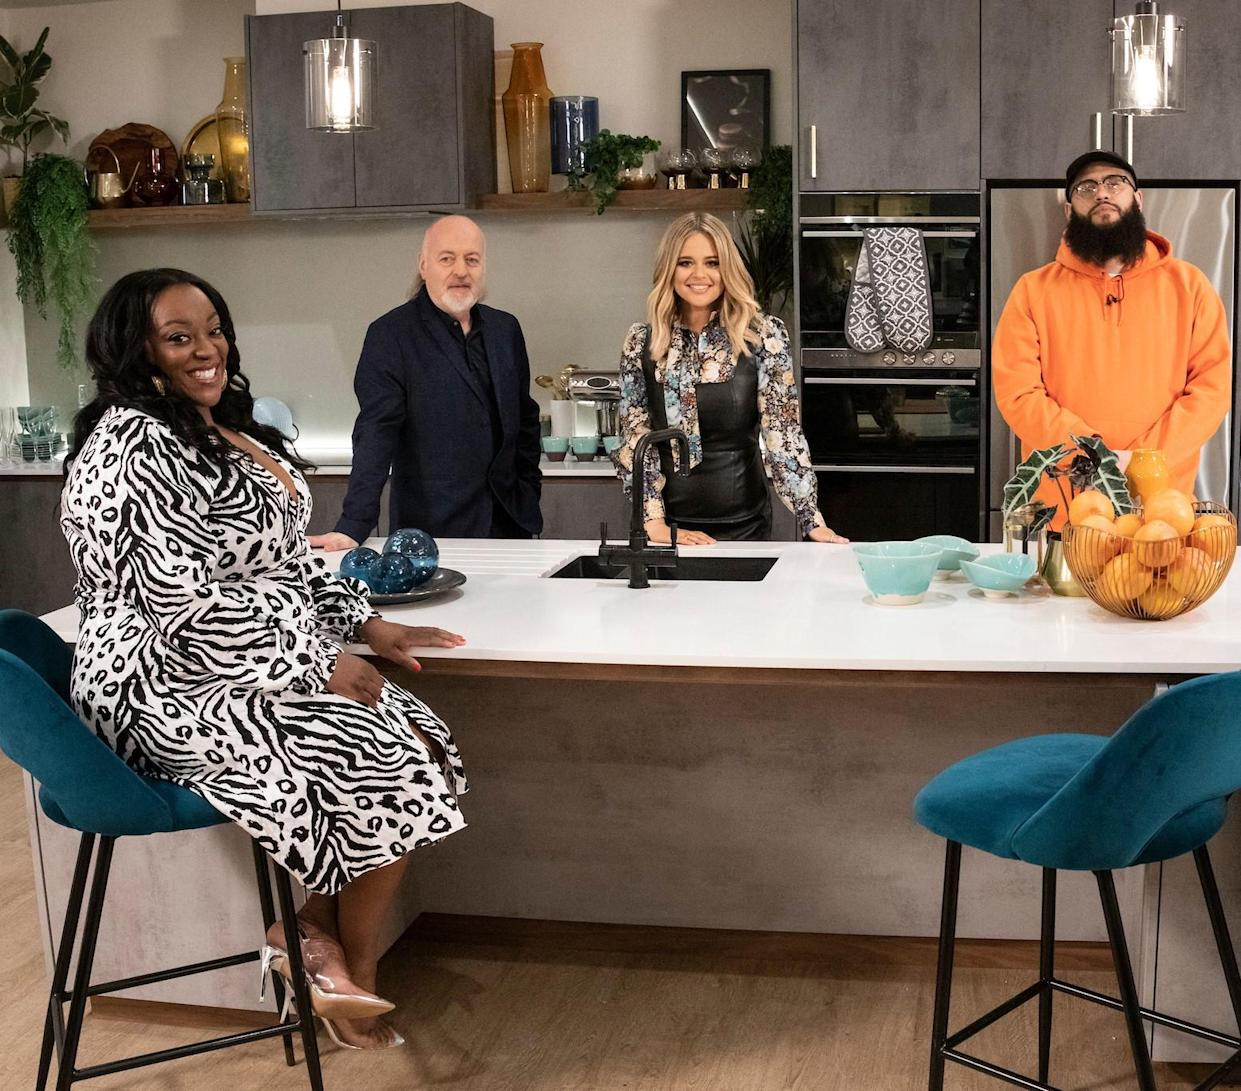 Judi Love, Bill Bailey, Emily Atack and Jamali Maddix (Expectation/BBC/PA)